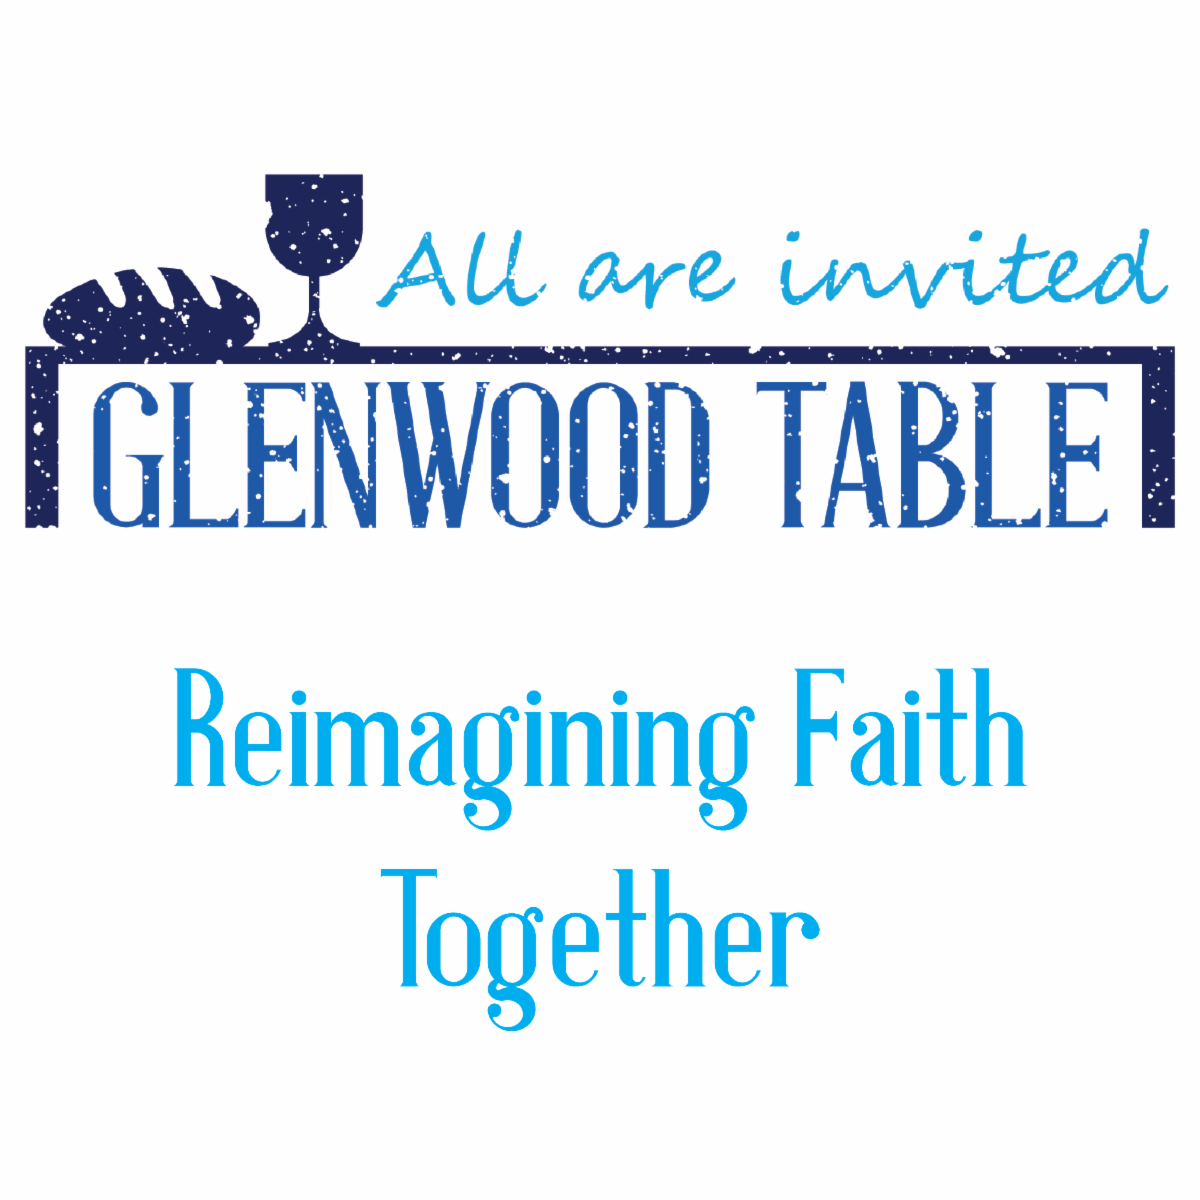 """The logo of Glenwood Table, one of FPC of Glen Cove's partner ministries. It is a white background with words in light blue and navy blue texts. The centerpiece is a navy blue section that says """"Glenwood Table"""" that appears to be under a table."""